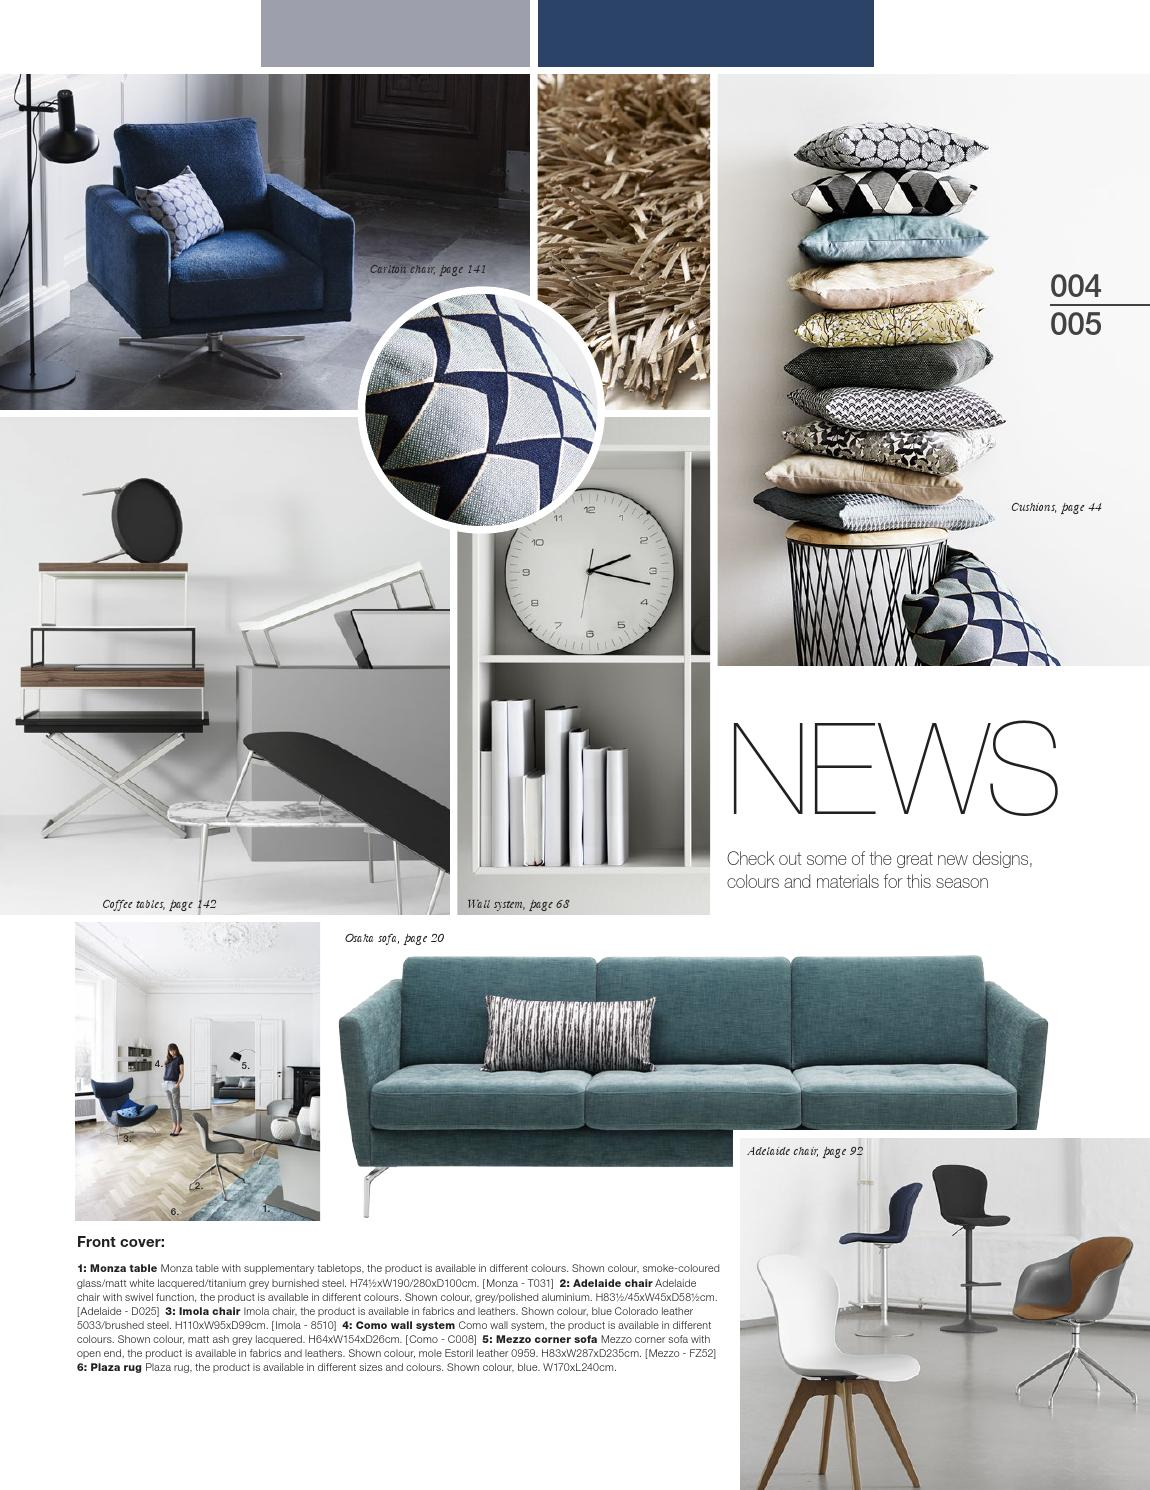 Sensational Boconcept 2015 By Imoti Da Da Profil Issuu Caraccident5 Cool Chair Designs And Ideas Caraccident5Info